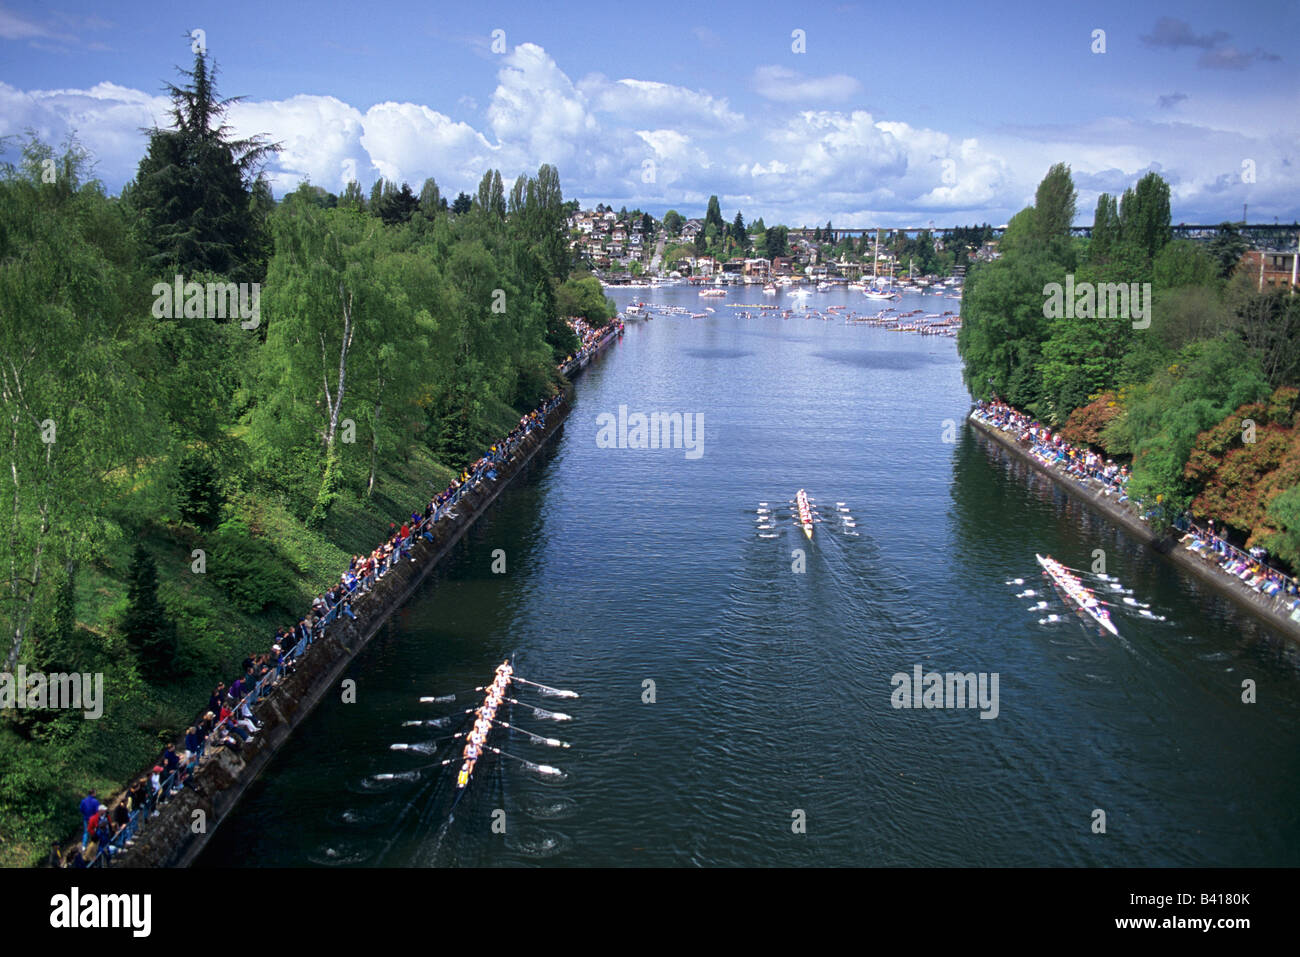 WA, Seattle, Windermere Cup Races at Montlake Cut; opening of boating season - Stock Image